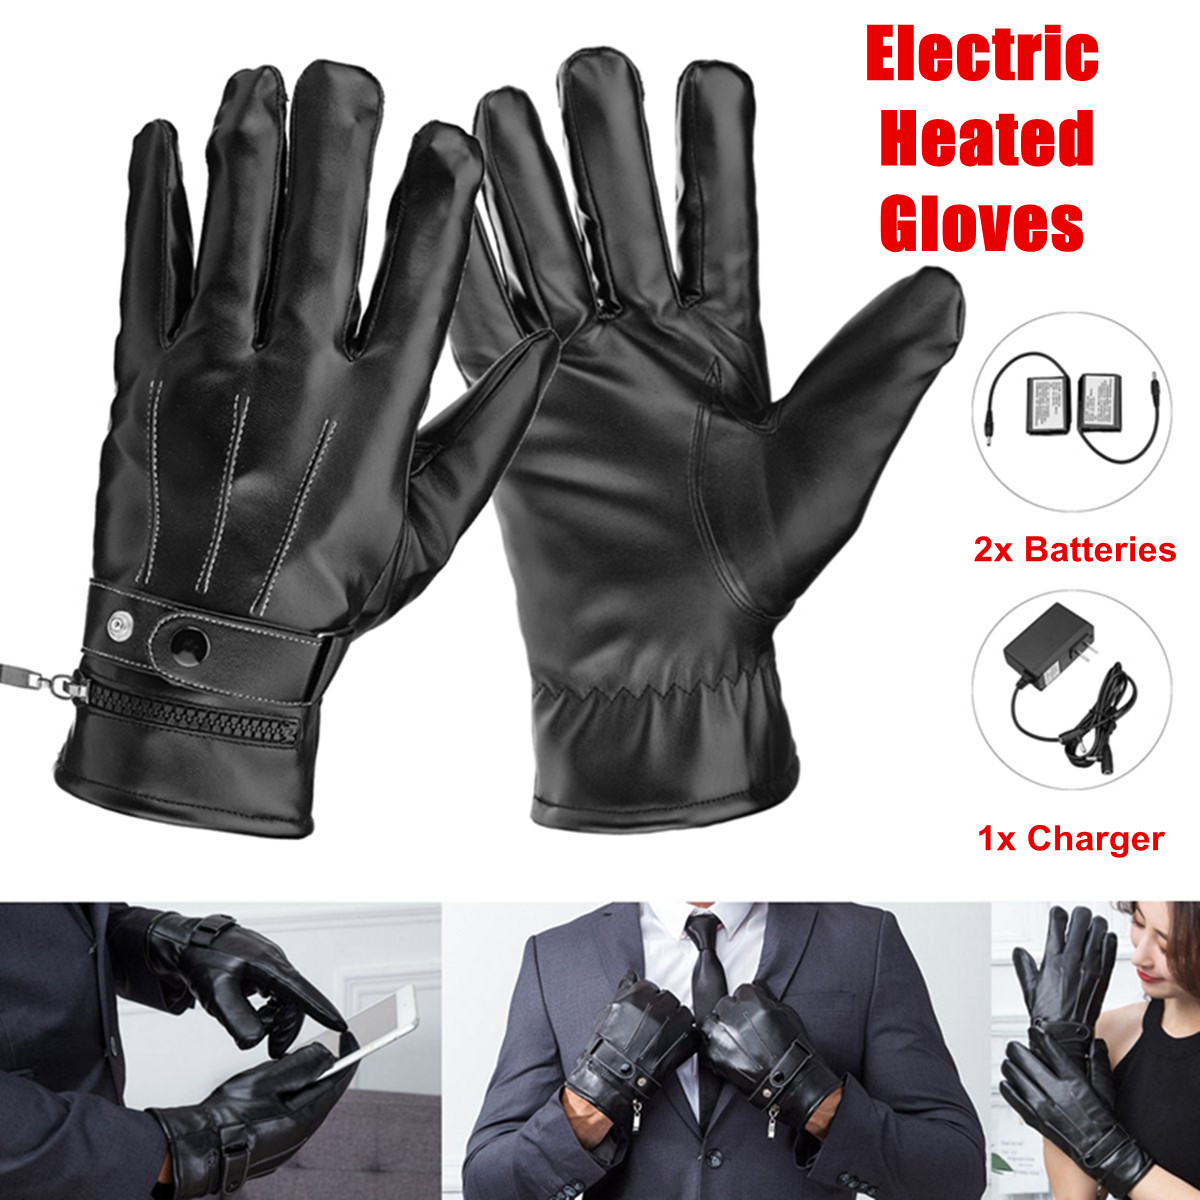 Thermal Electric Heated Gloves Winter Skiing Gloves Unisex Black Bicycle Motorcycle Hands Warmer Rechargeable Battery 1